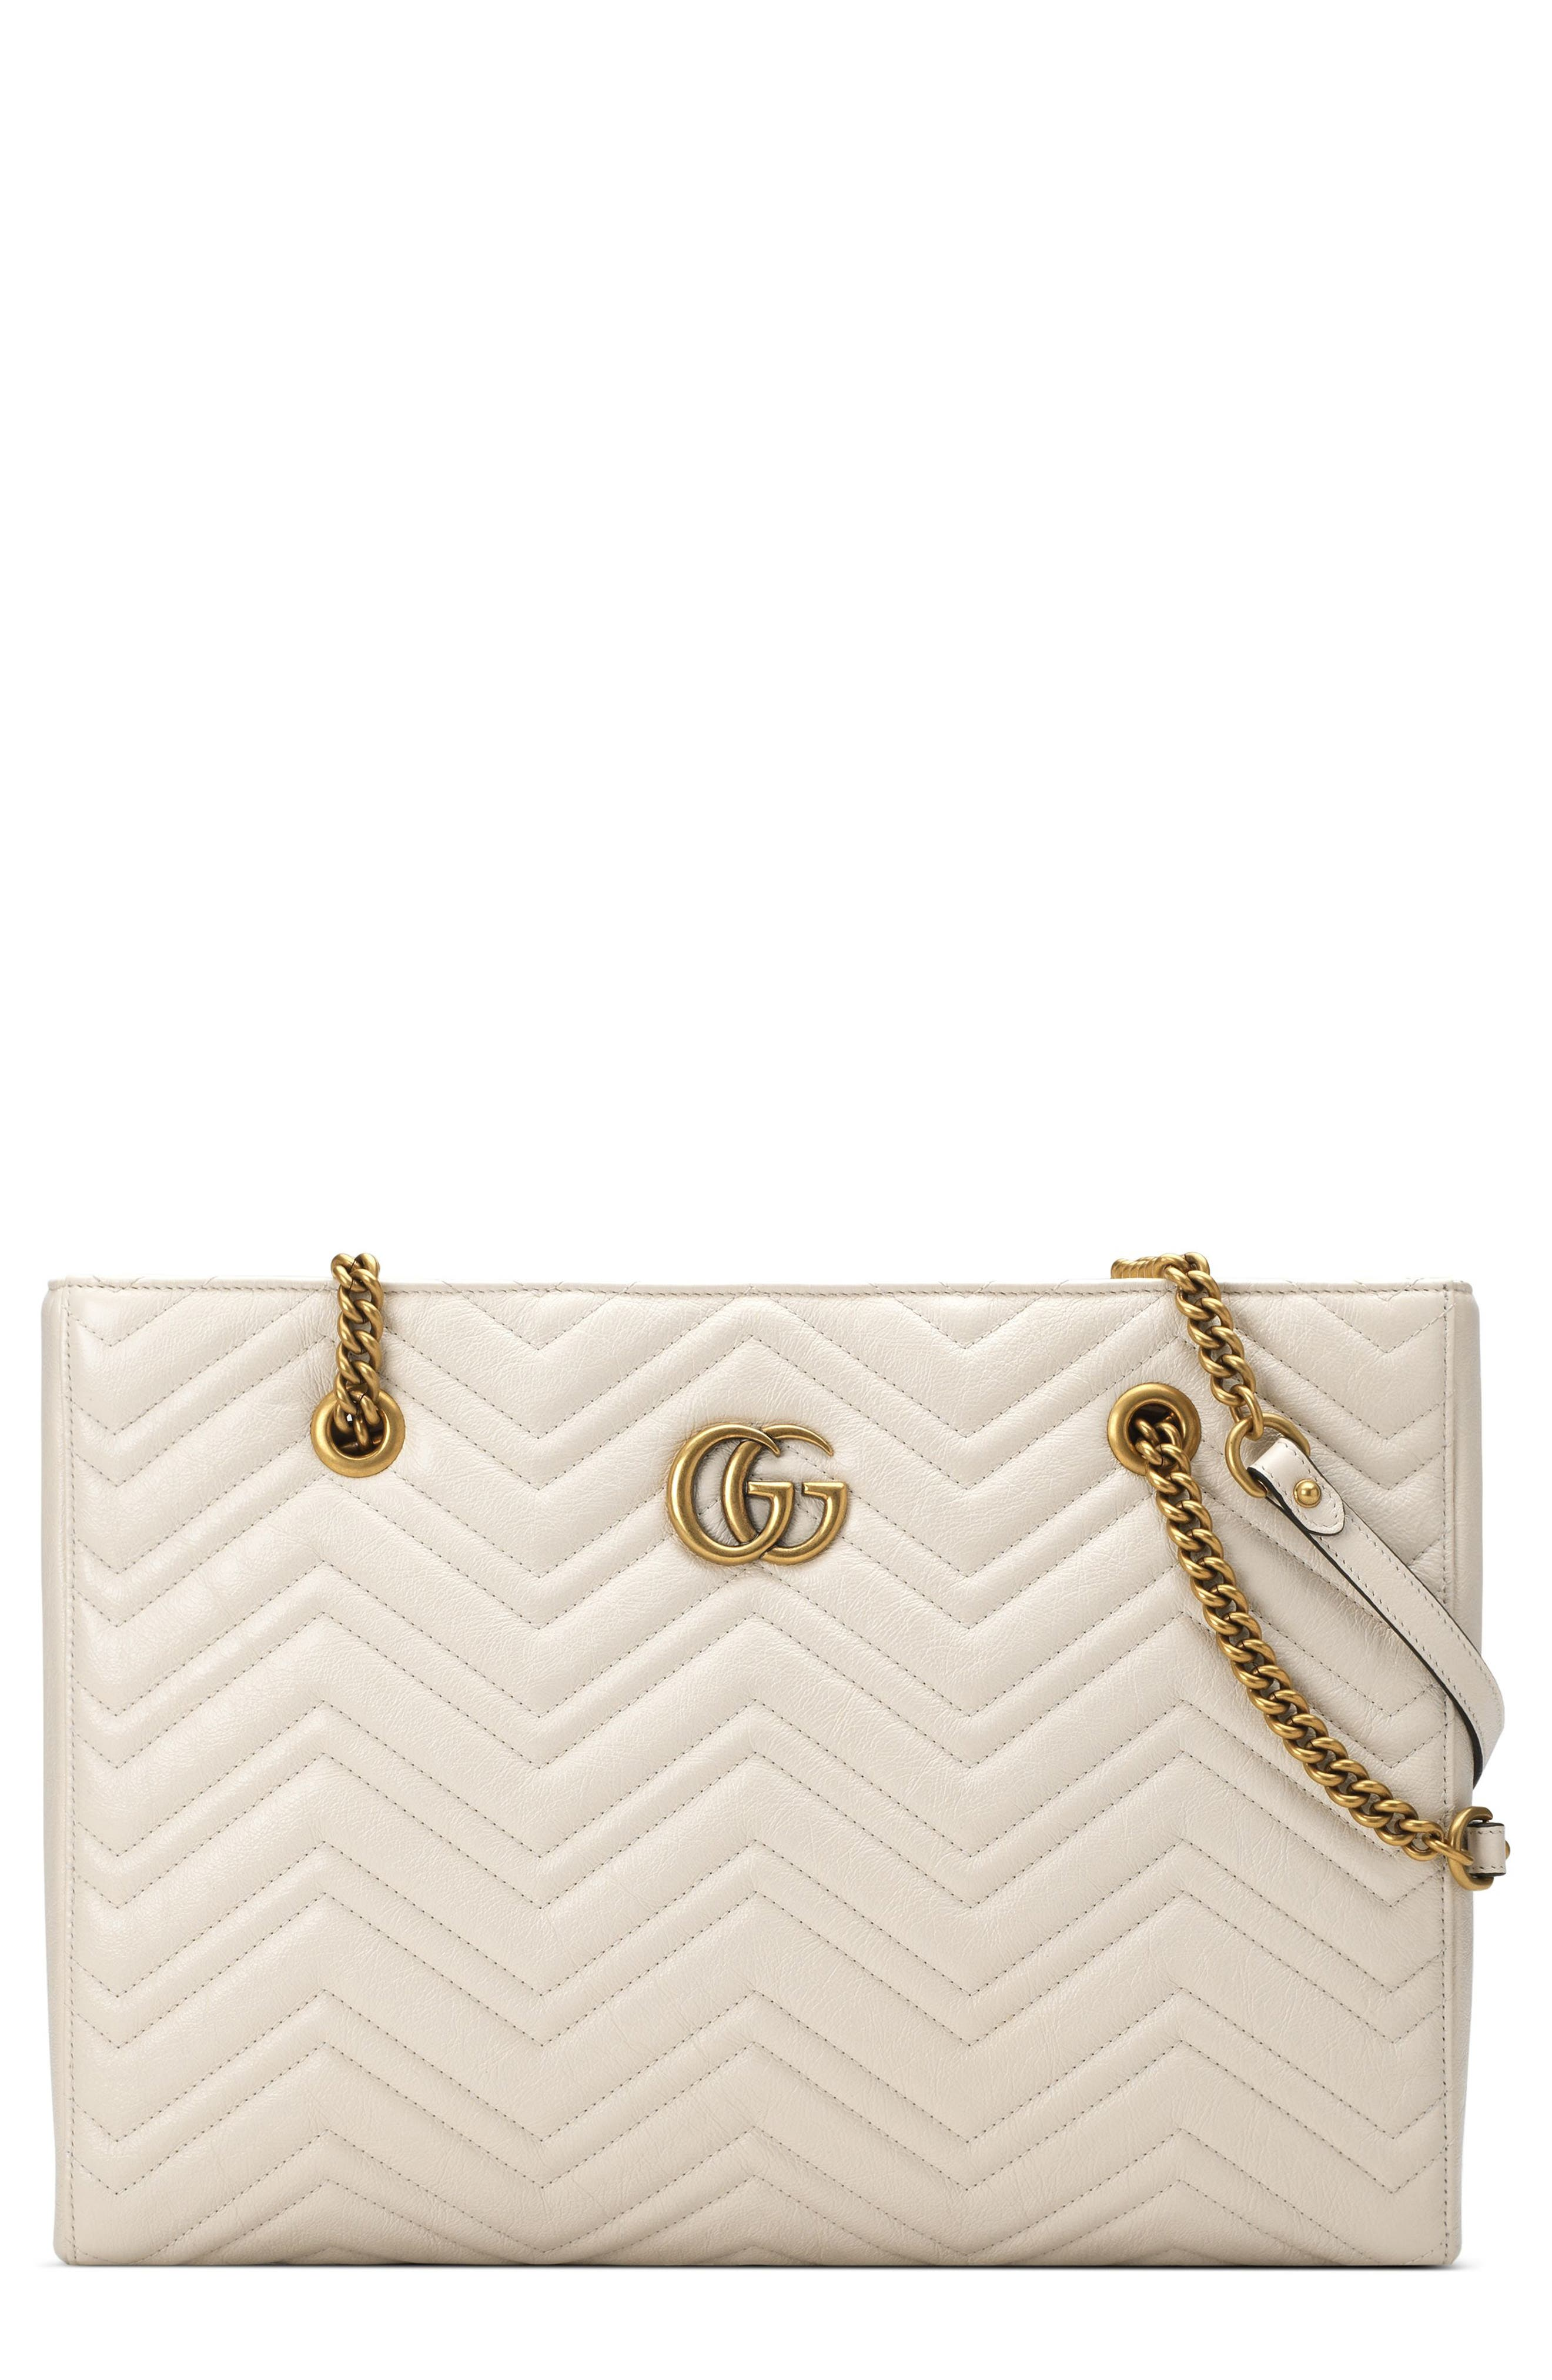 Gg Marmont 2.0 Matelasse Medium Leather East/West Tote Bag - White in Mystic White